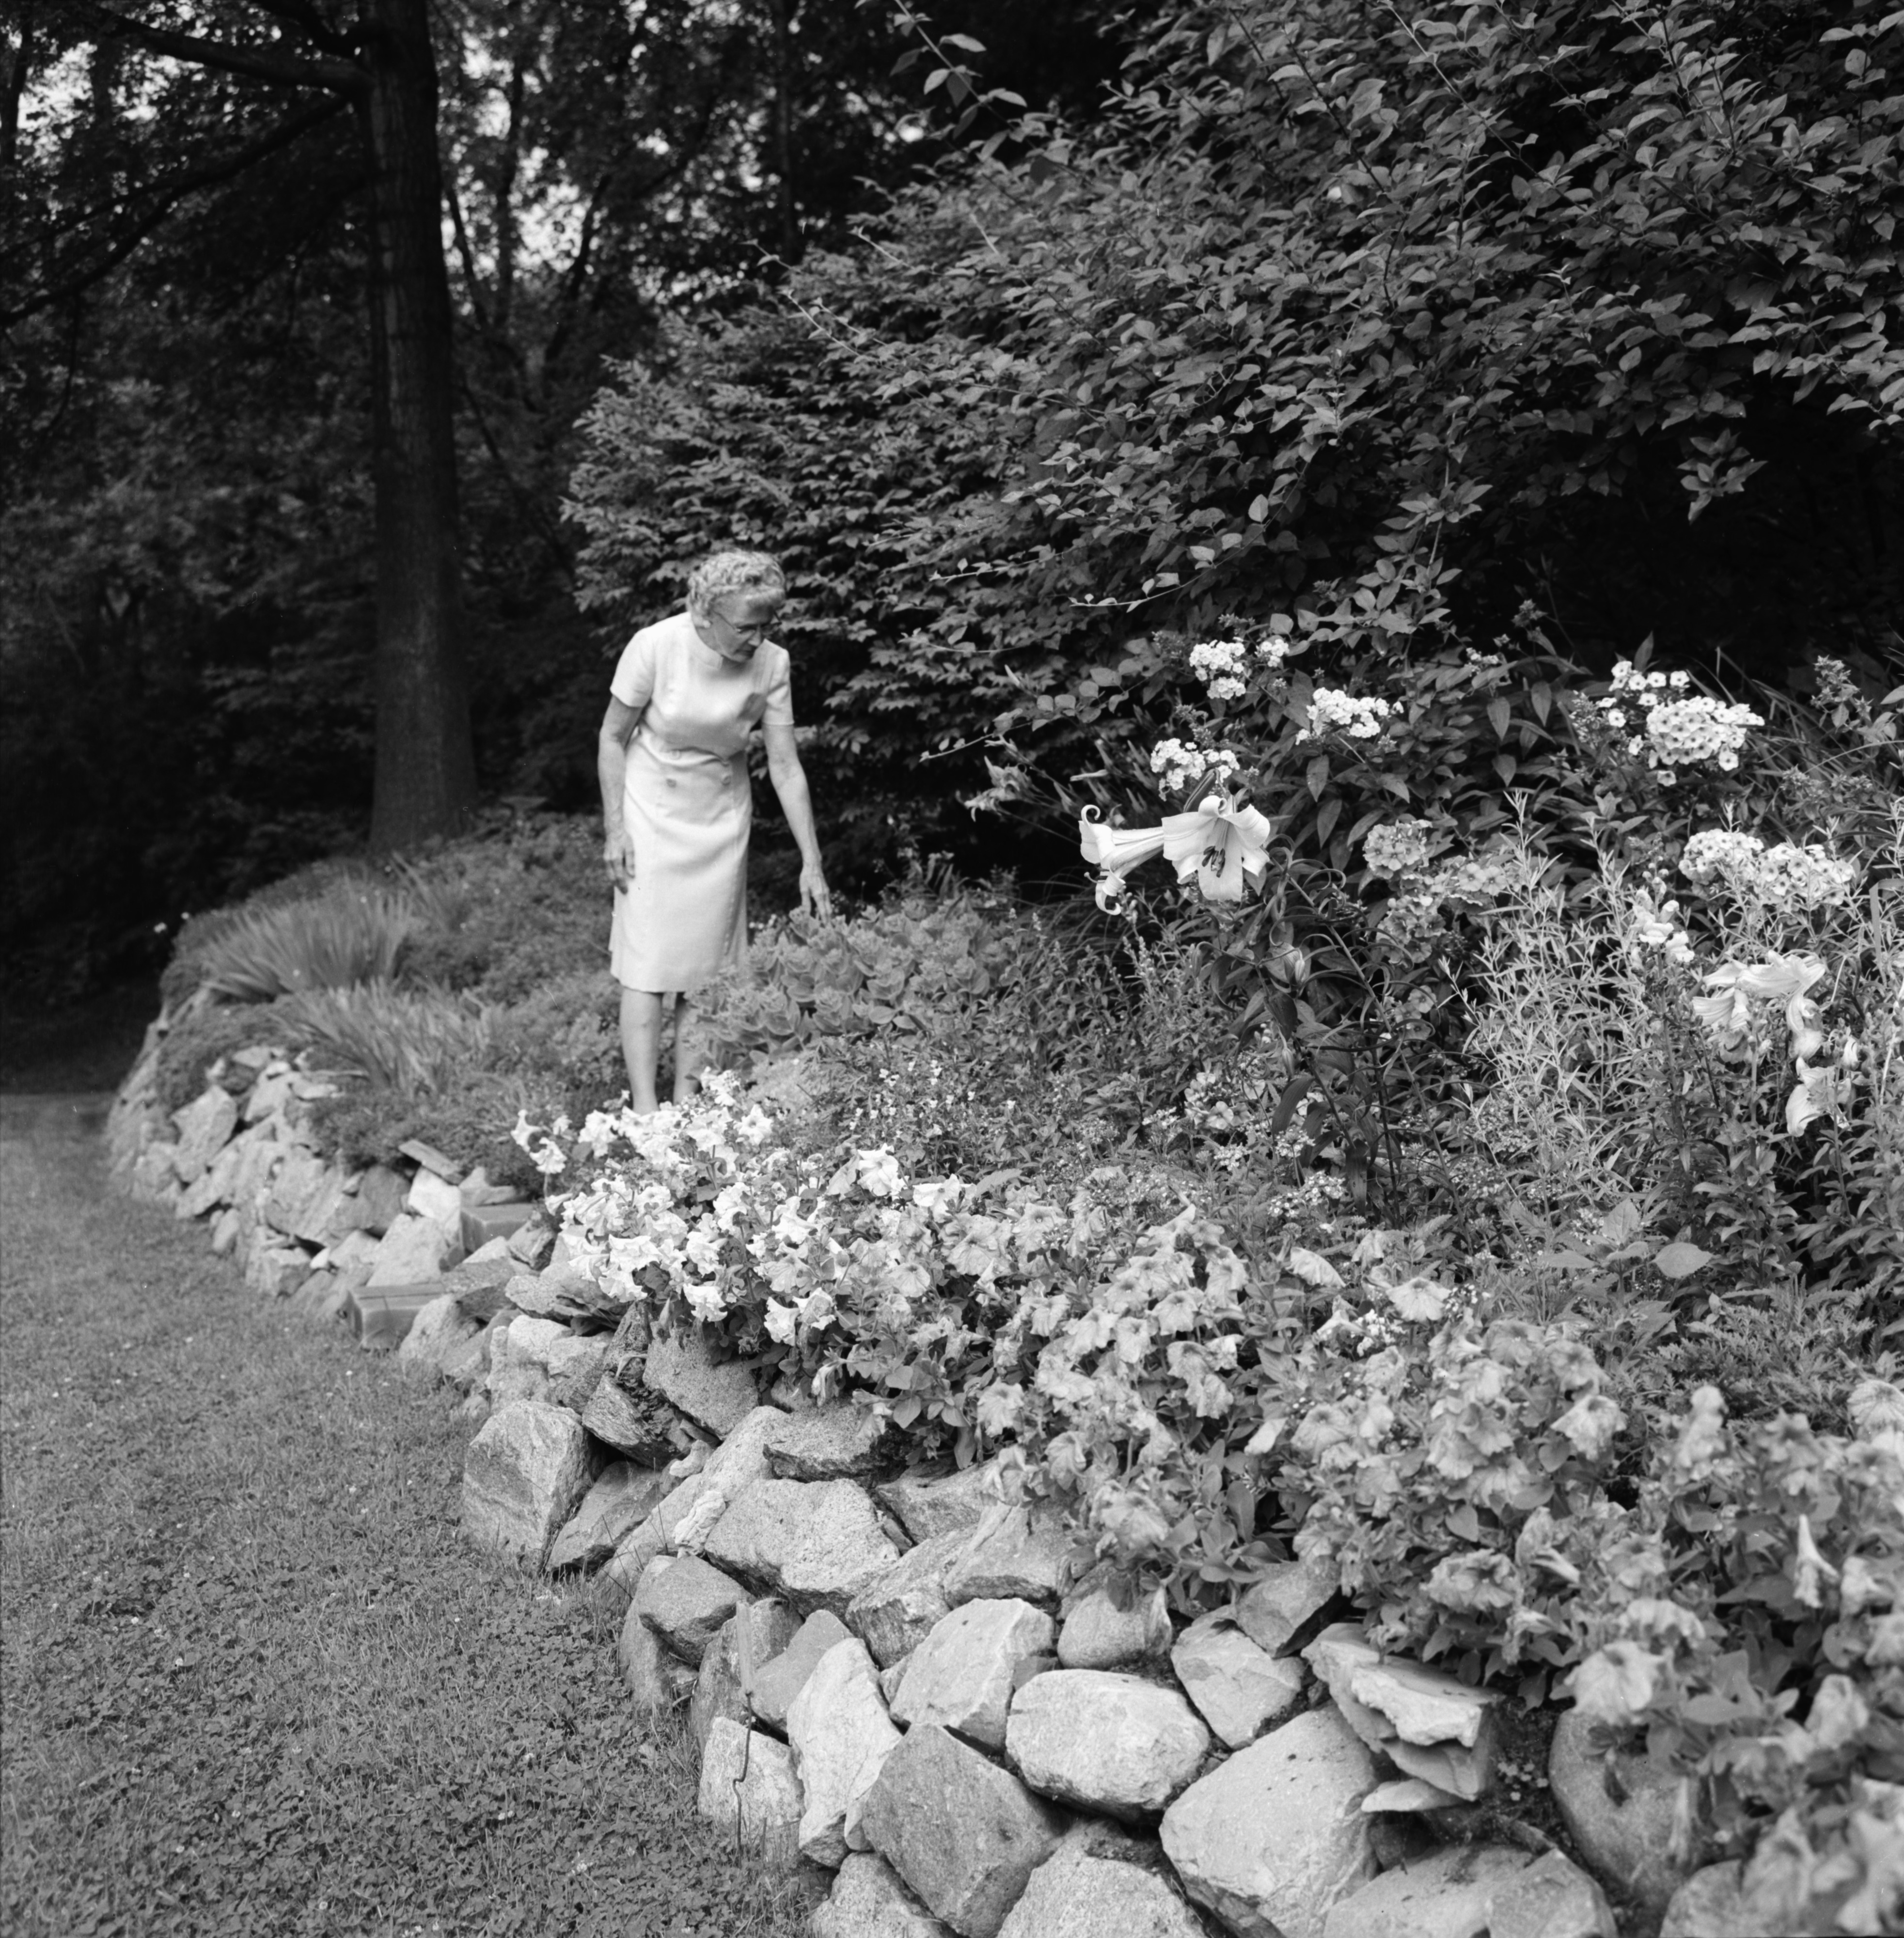 Mrs. Raleigh Schorling and Rock Garden, July 1967 image